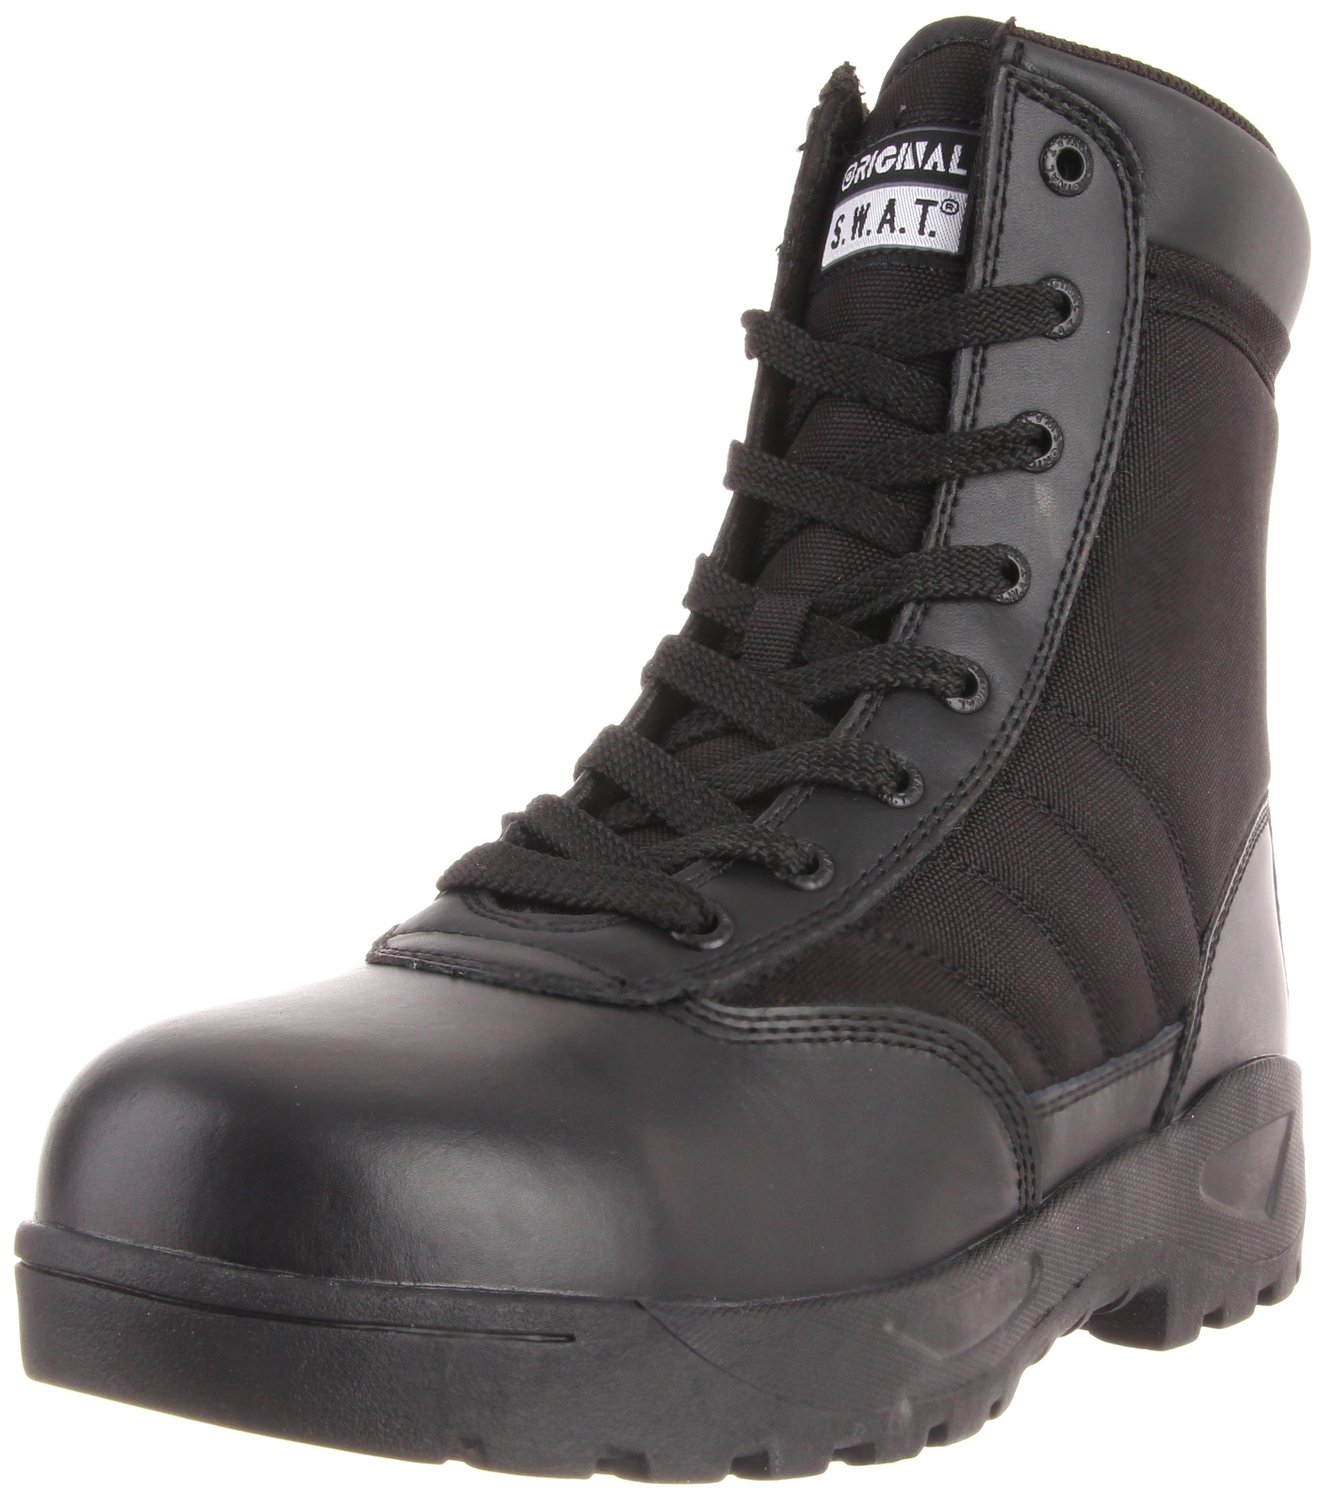 Original S.W.A.T. Men's Classic 9 Light Safety Toe Work Boot Side